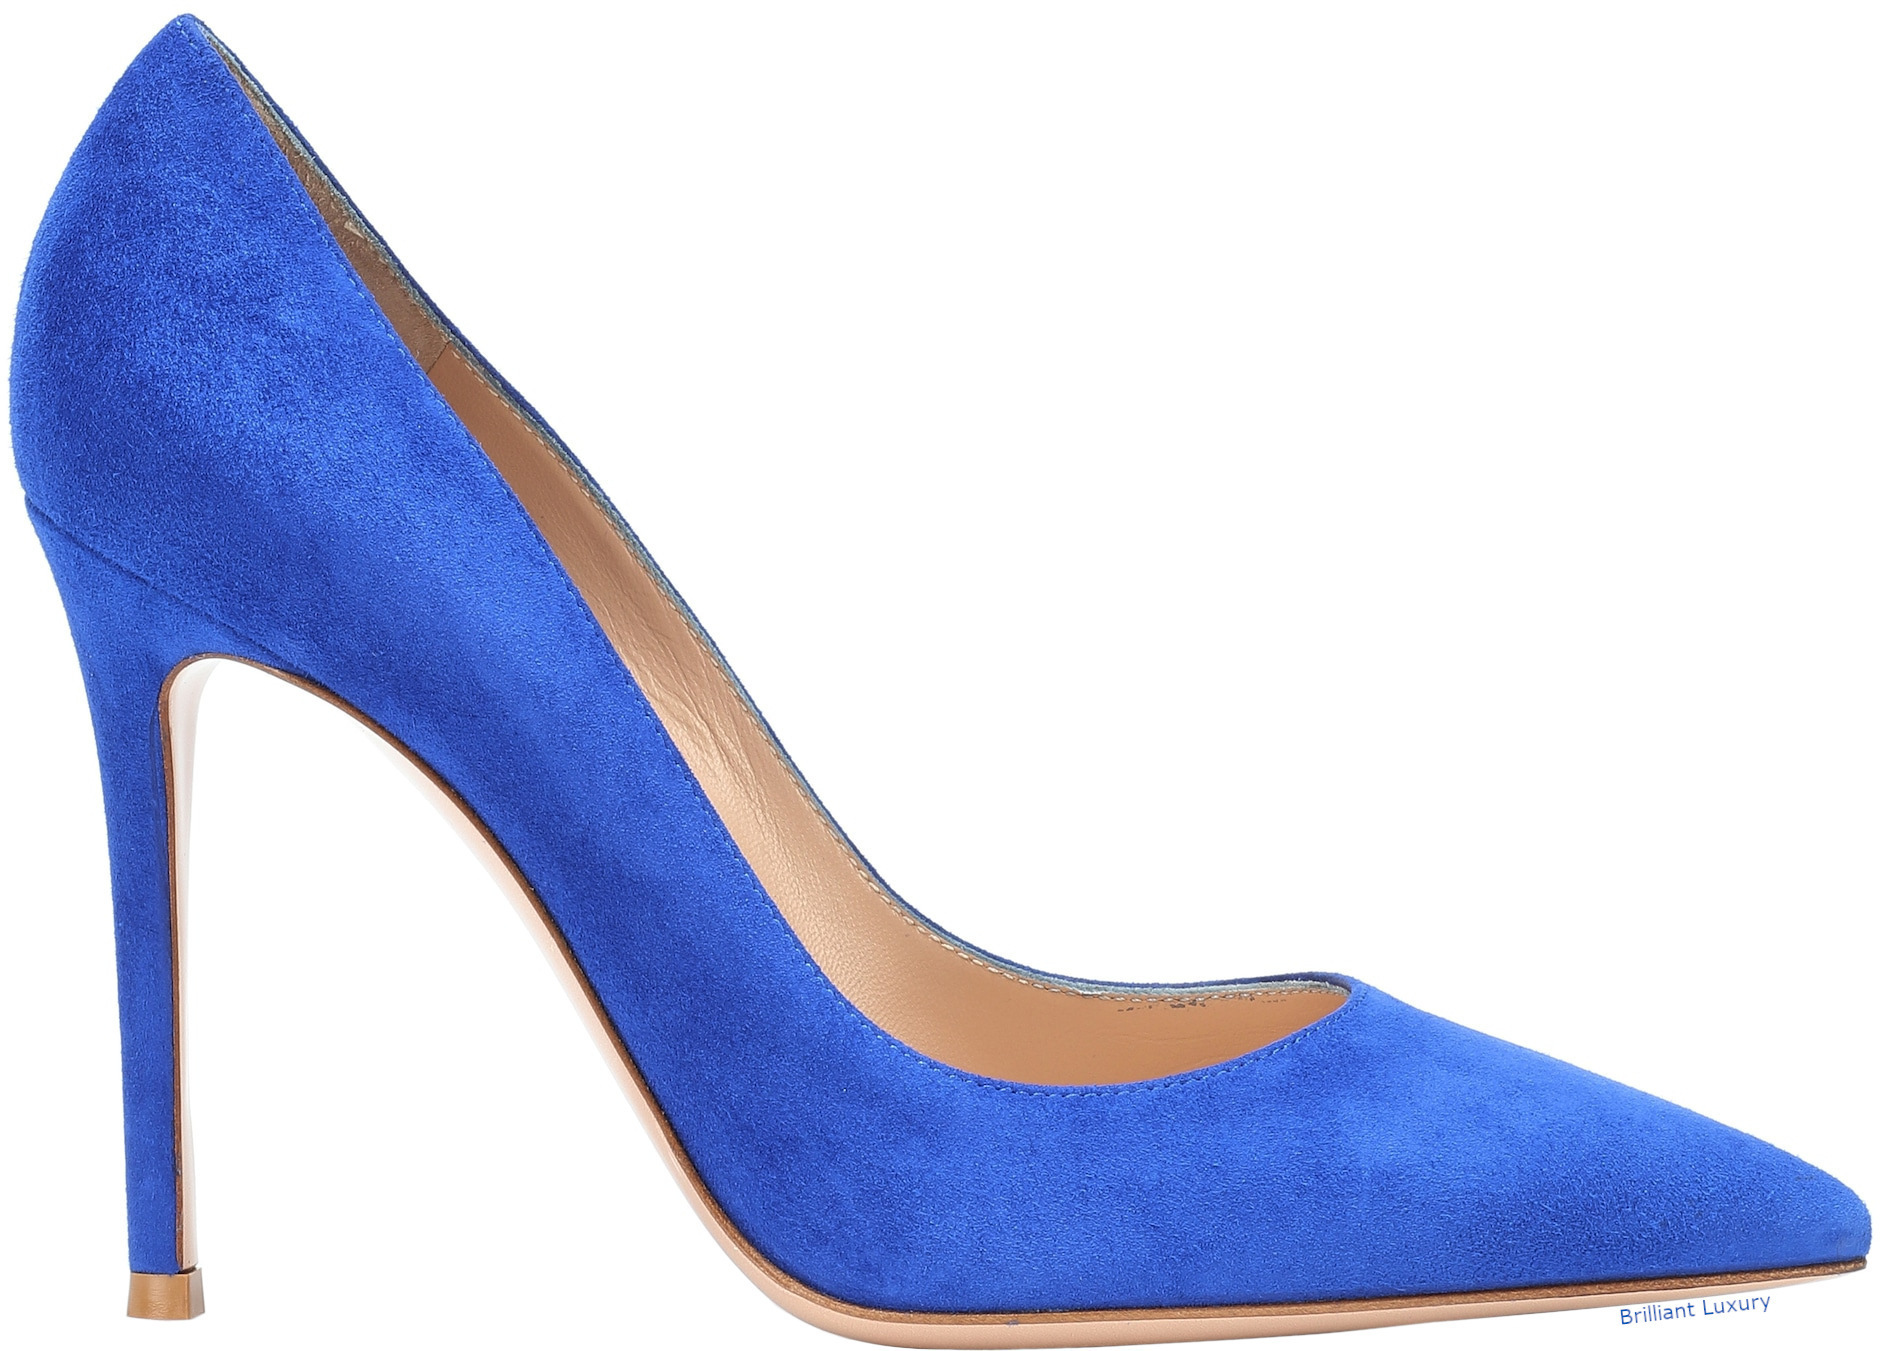 Gianvito Rossi Gianvito suede pumps in Pantone Color Princess Blue